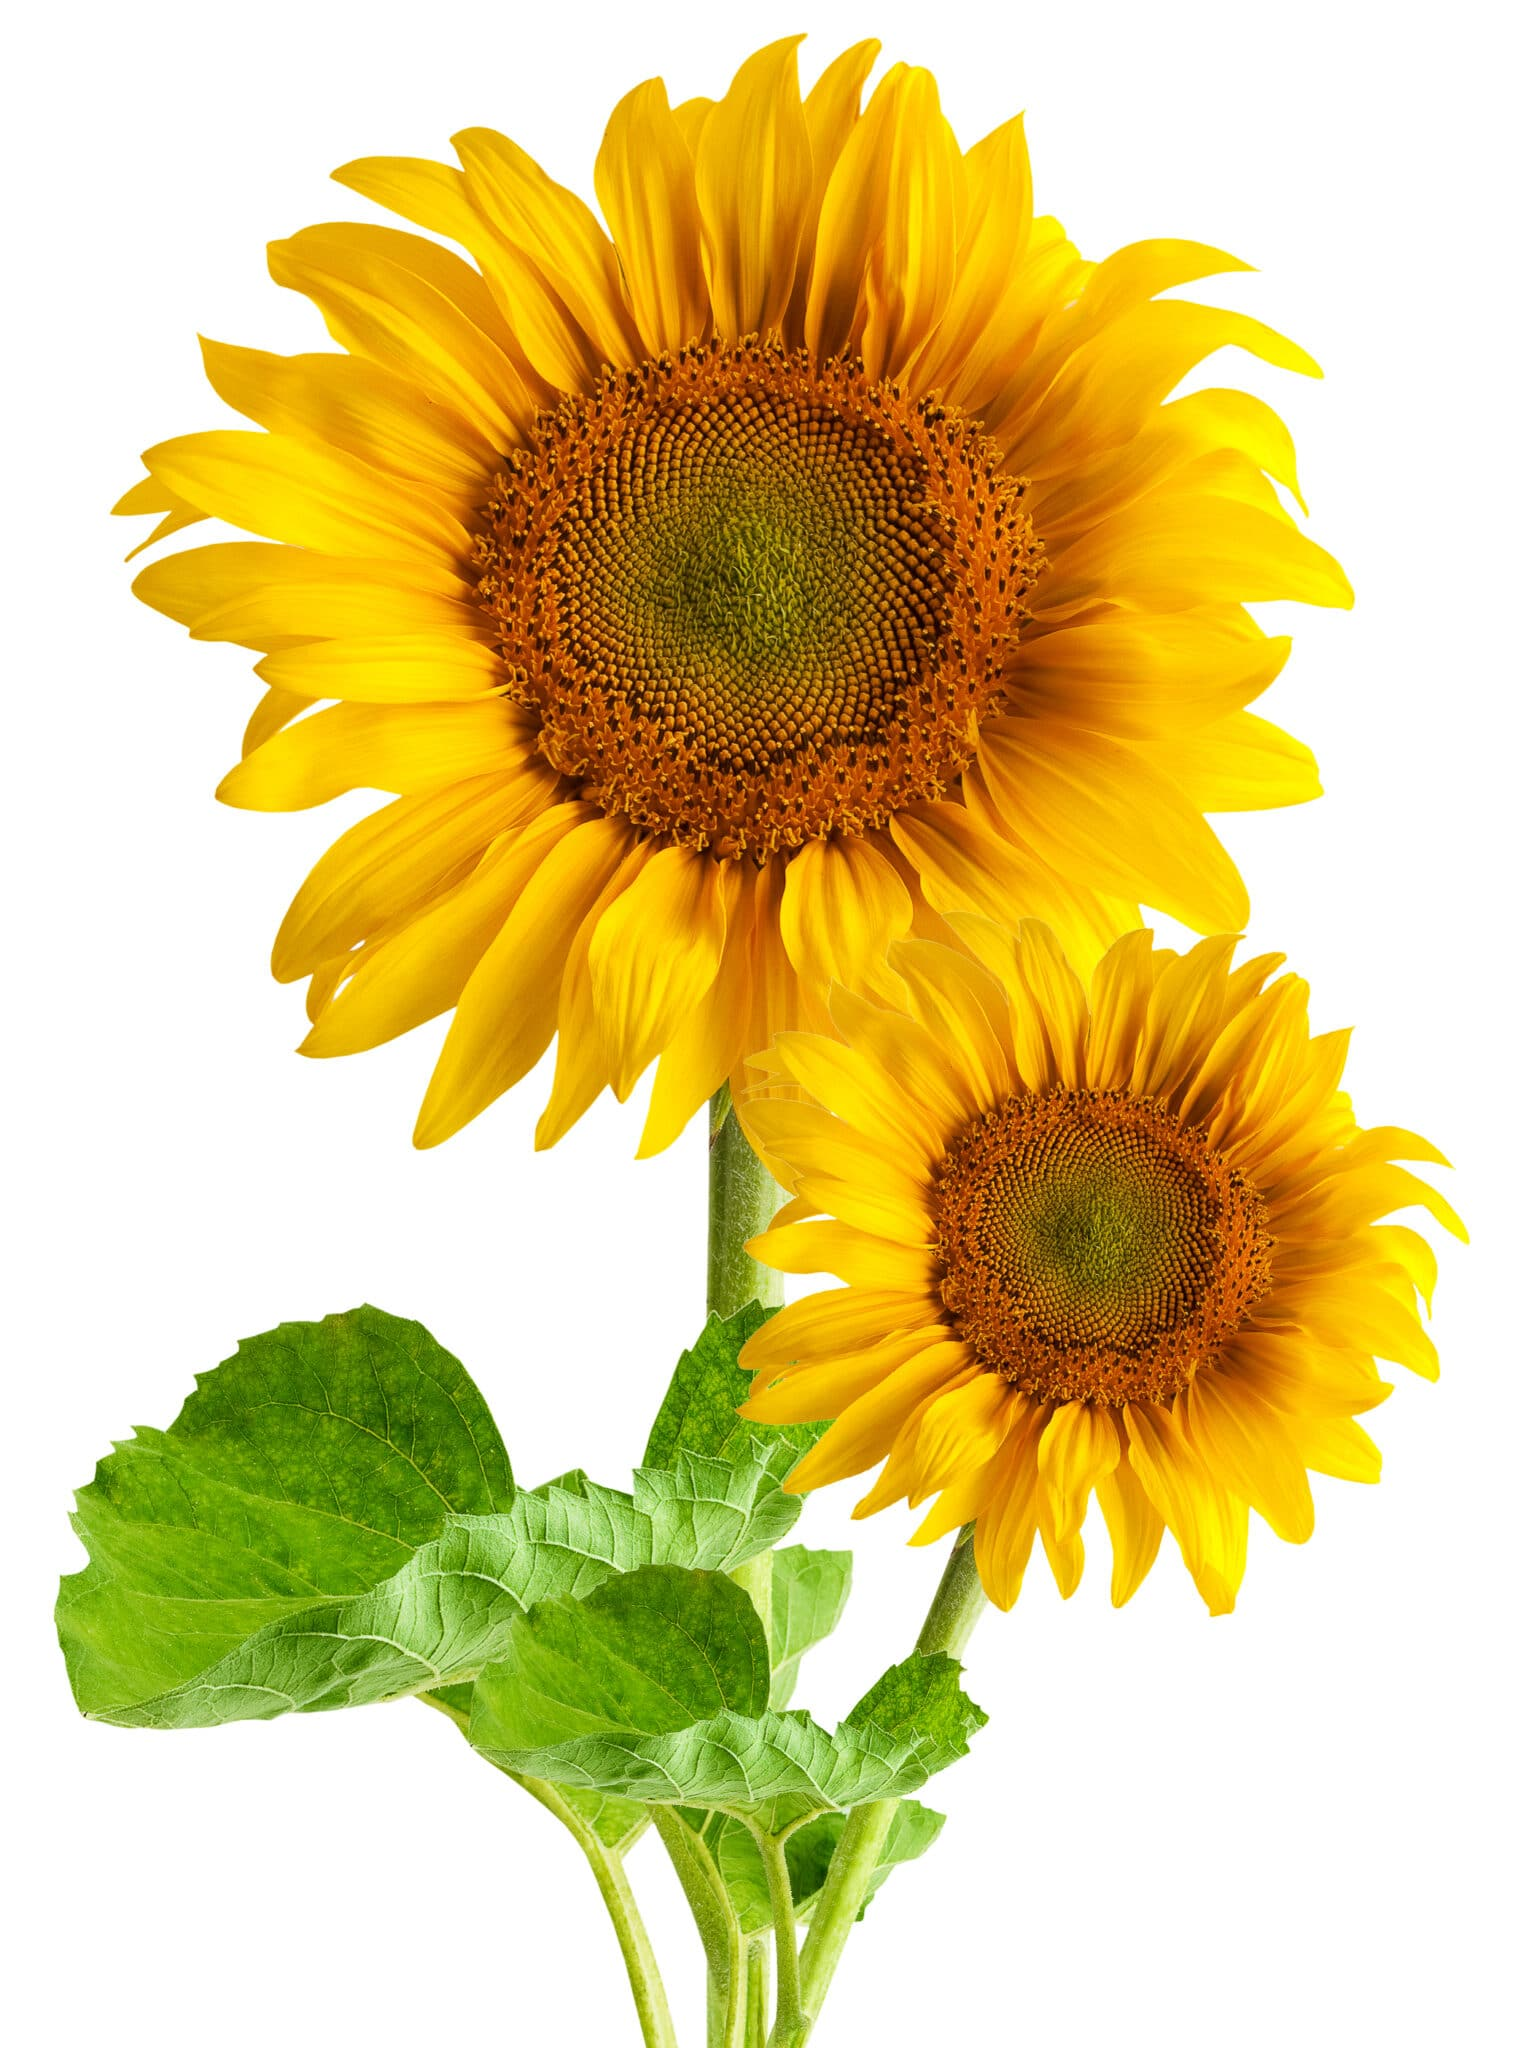 Vibrant yellow showy sunflowers against a bright white backrgound.